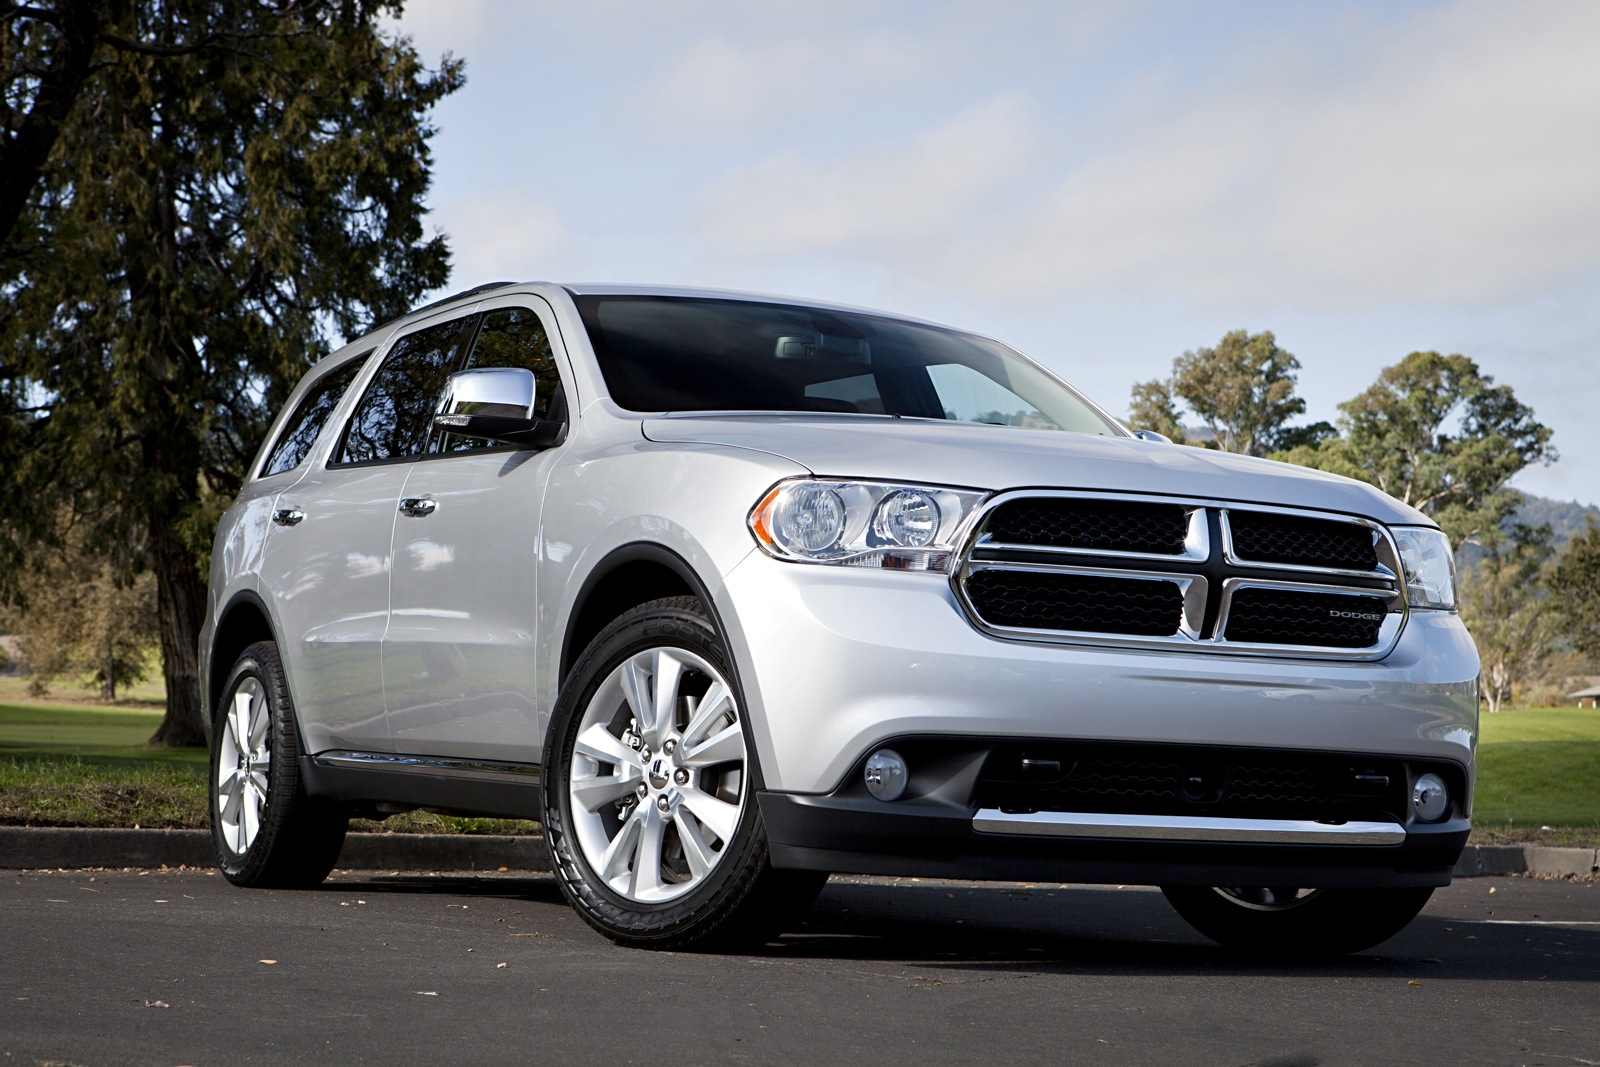 New Trucks For Sale >> 2013 Dodge Durango Review, Ratings, Specs, Prices, and Photos - The Car Connection